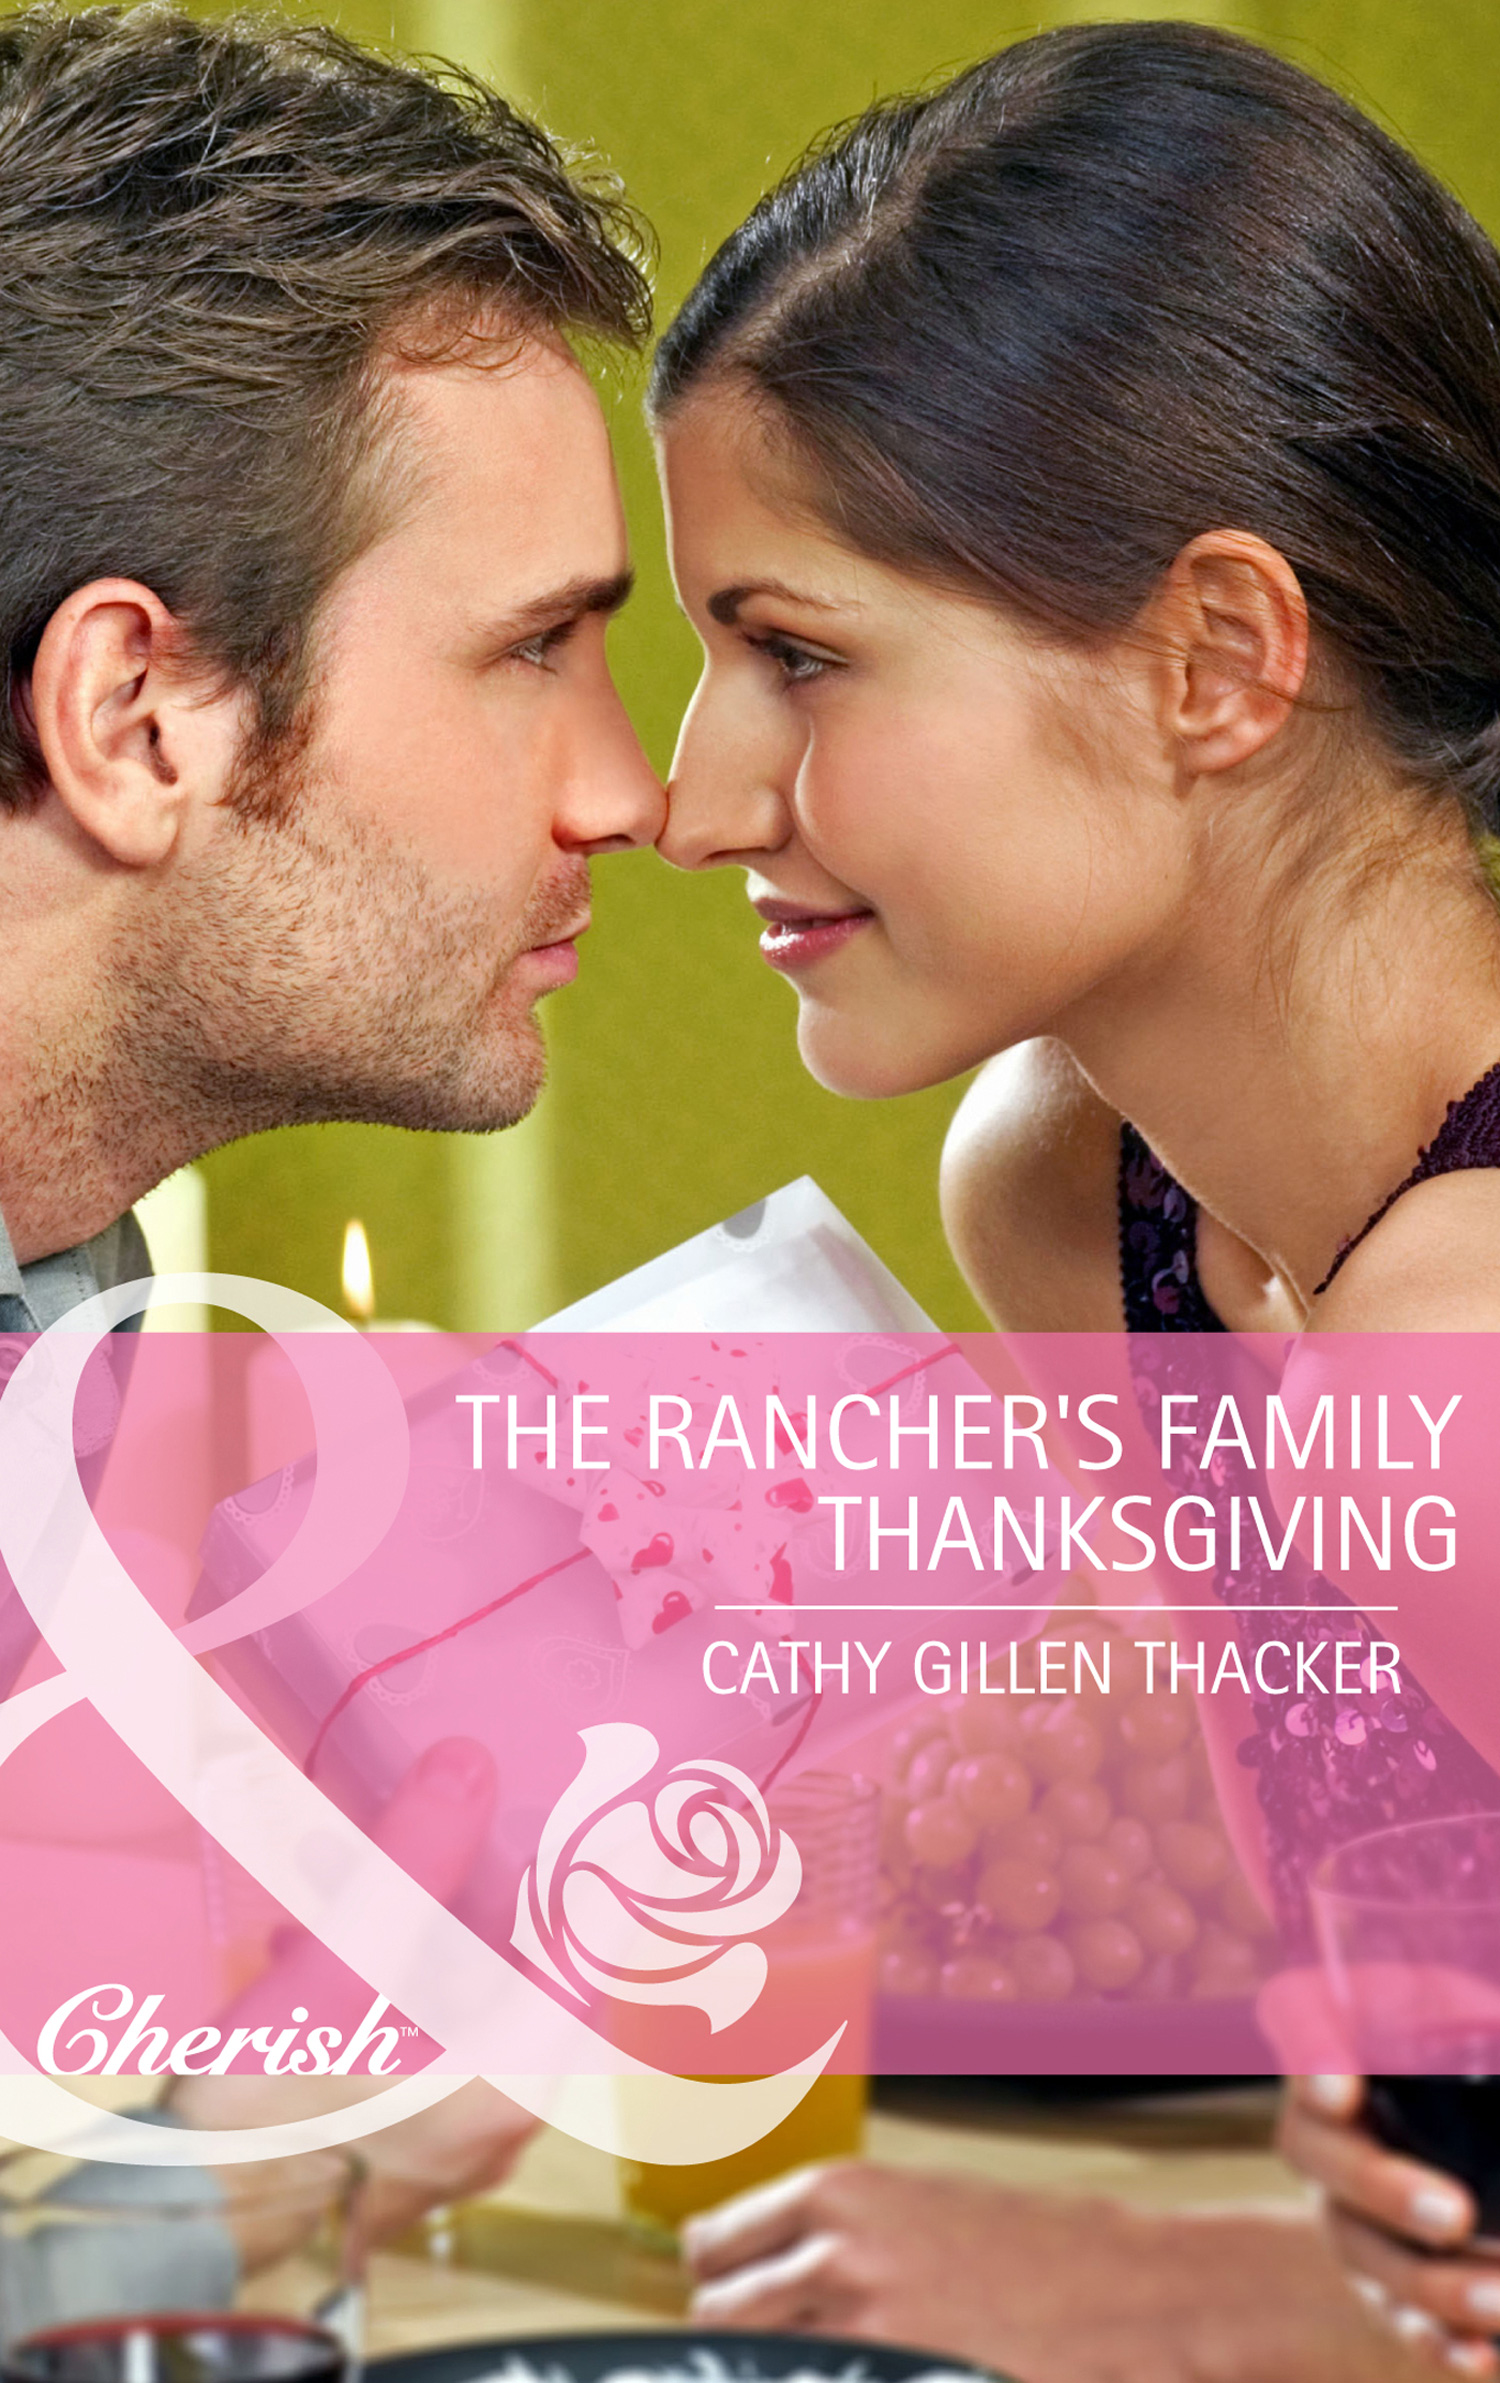 The Rancher's Family Thanksgiving